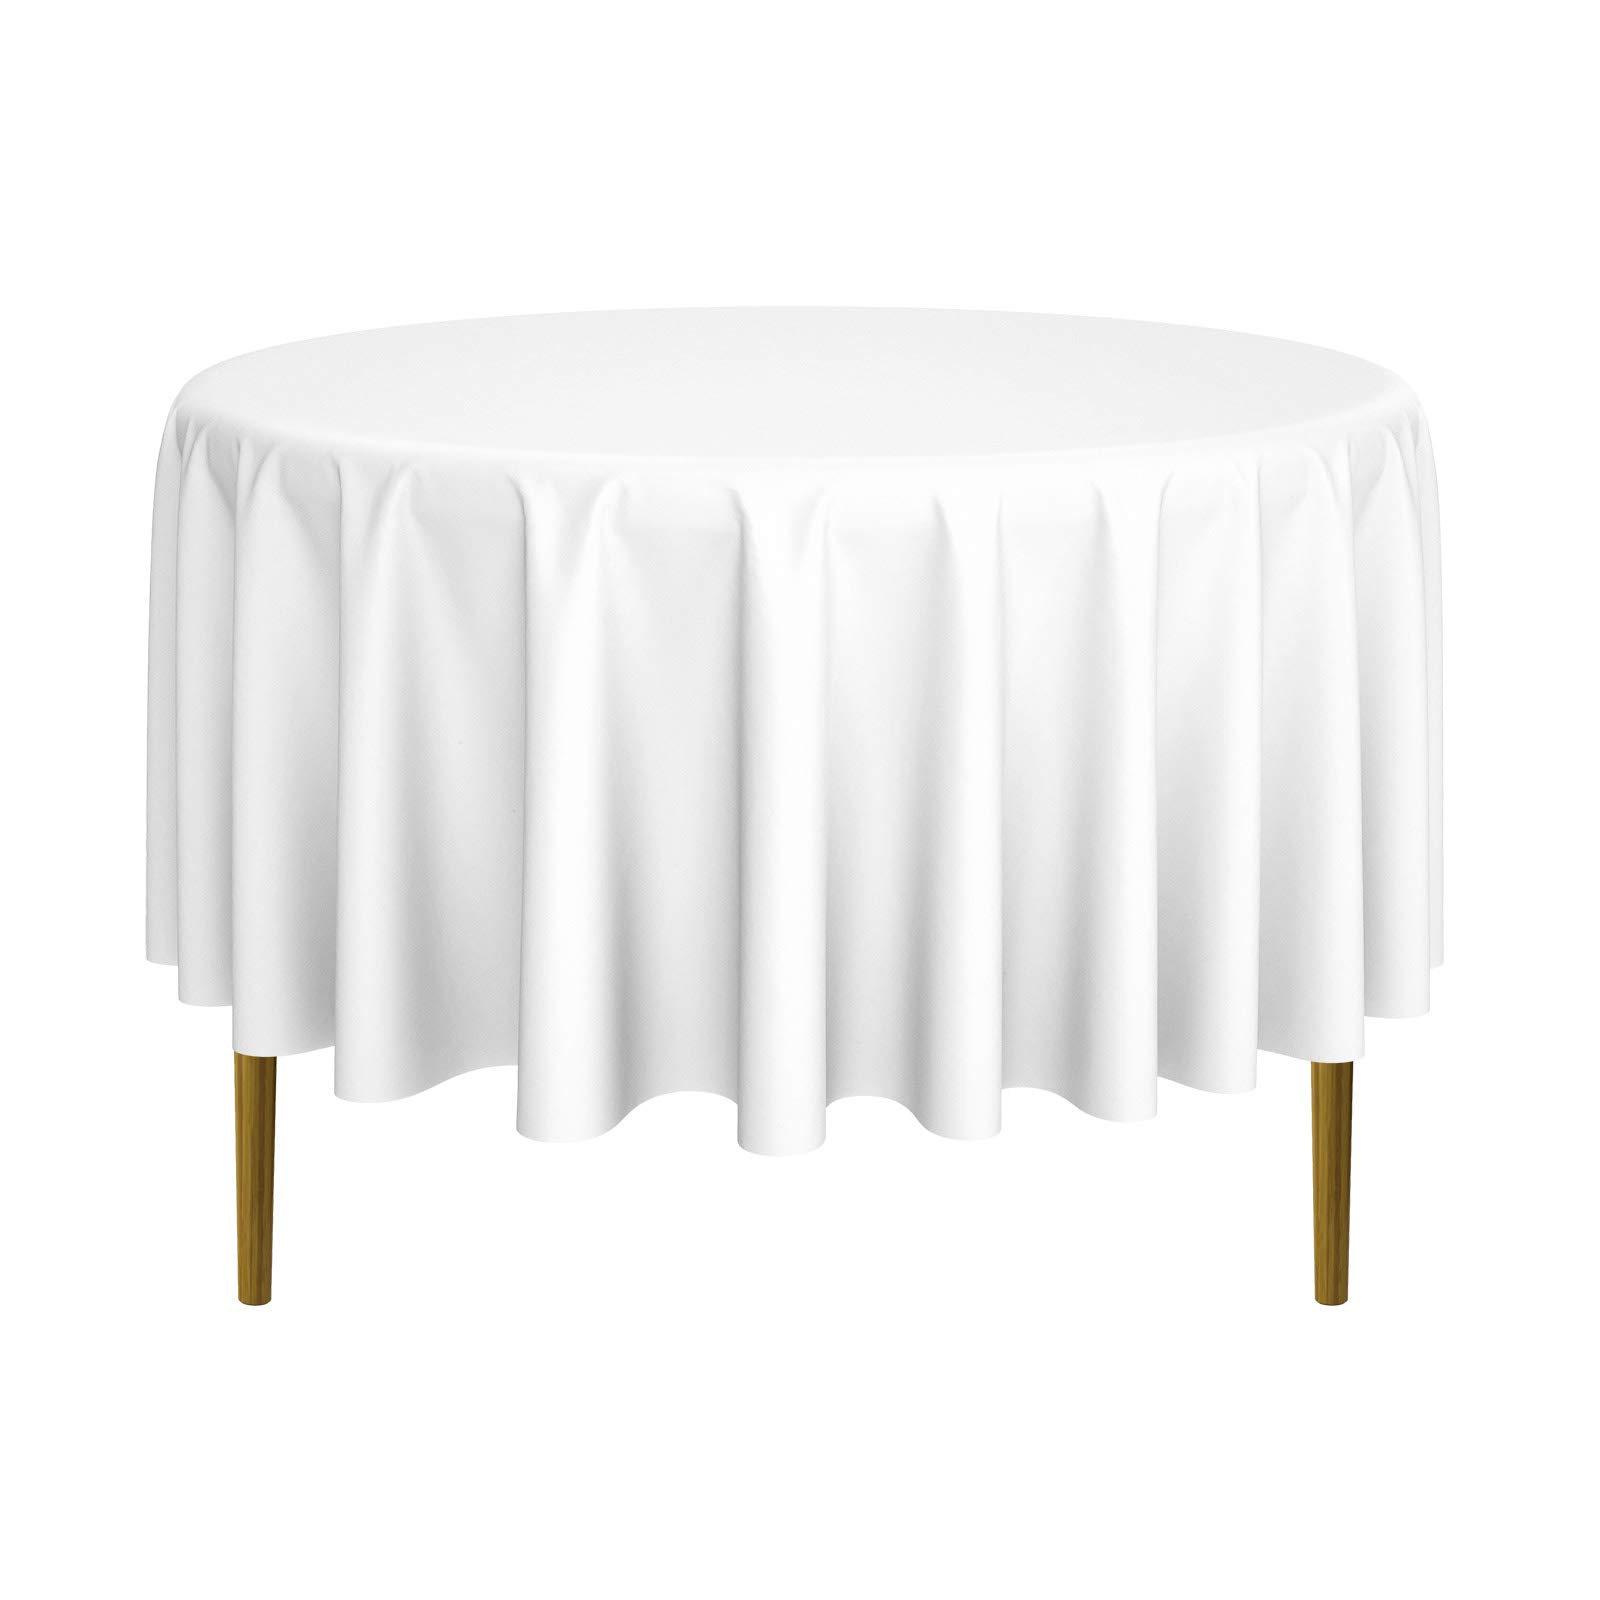 Lann's Linens - 20 Premium 90'' Round Tablecloths for Wedding/Banquet/Restaurant - Polyester Fabric Table Cloths - White